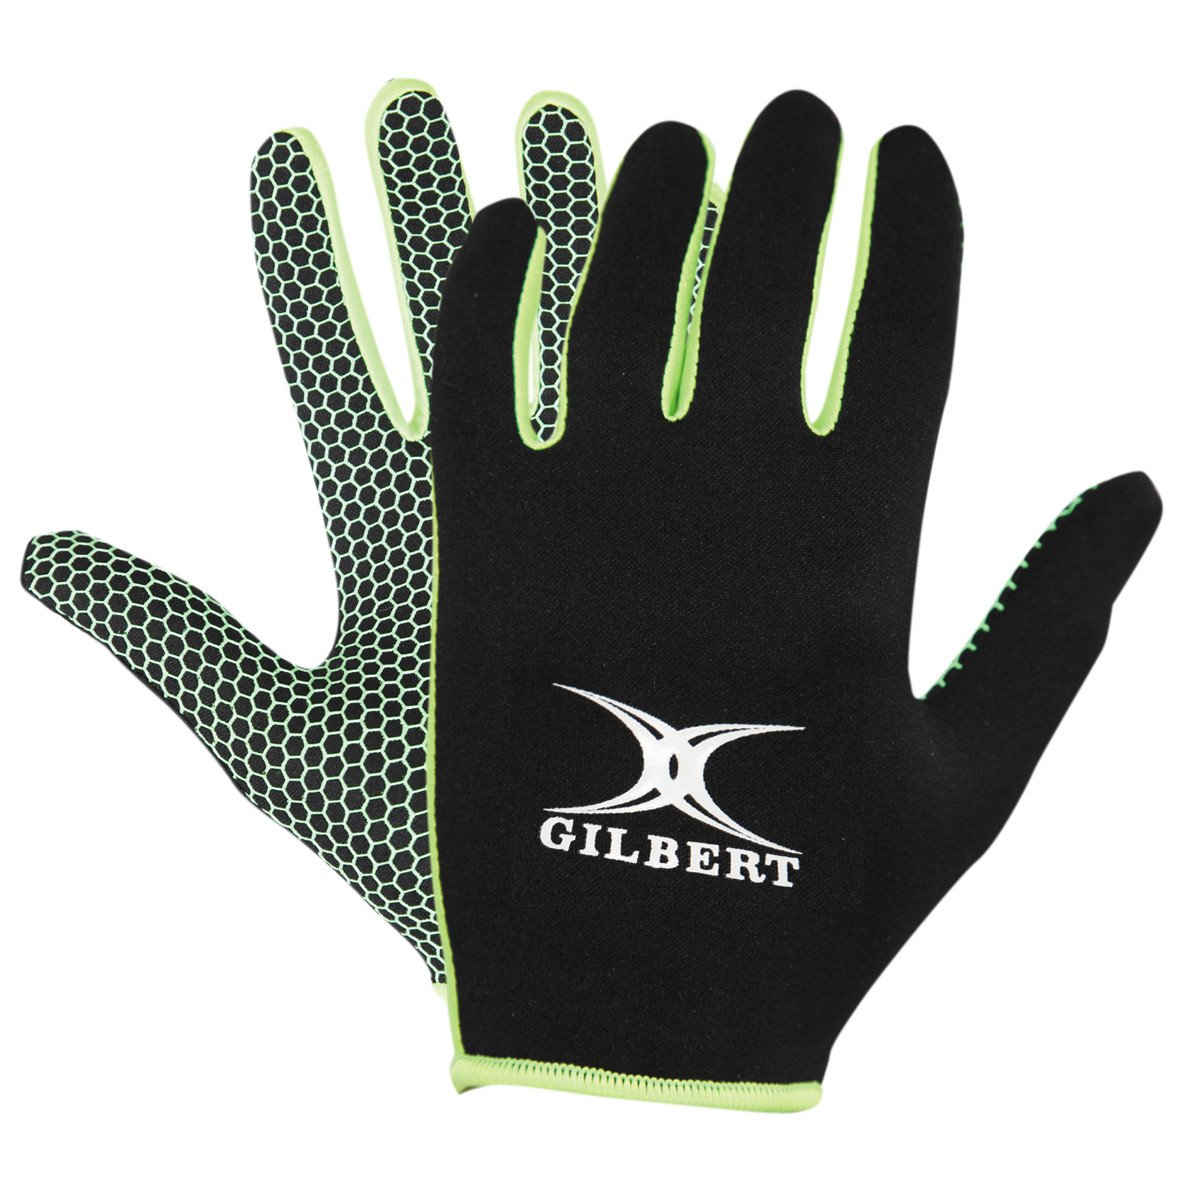 Kid's Atomic Full Finger Rugby Grip Mitt Black - First XV rugbystuff.com